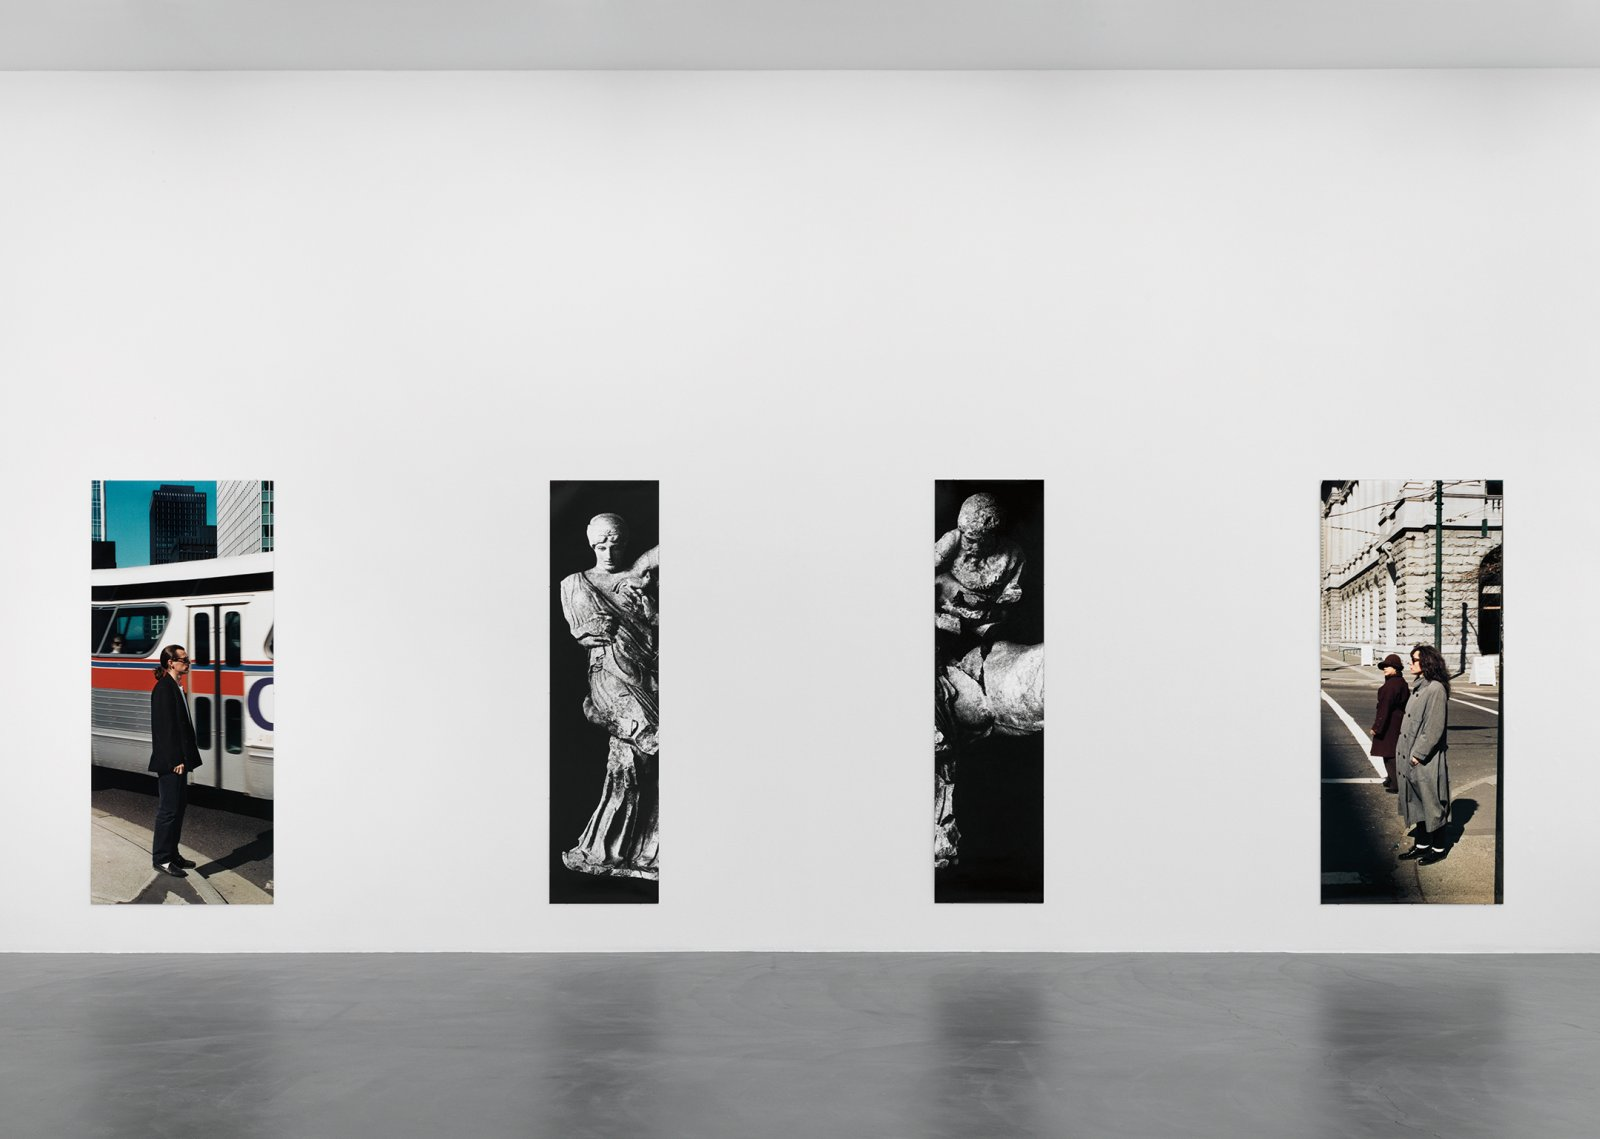 Ian Wallace, Untitled (Heavenly Embrace), 1987, 4 panel photo-mural behind plexiglas, dimensions variable. Installation view, A Literature of Images, Kunsthalle Zürich, 2008 by Ian Wallace